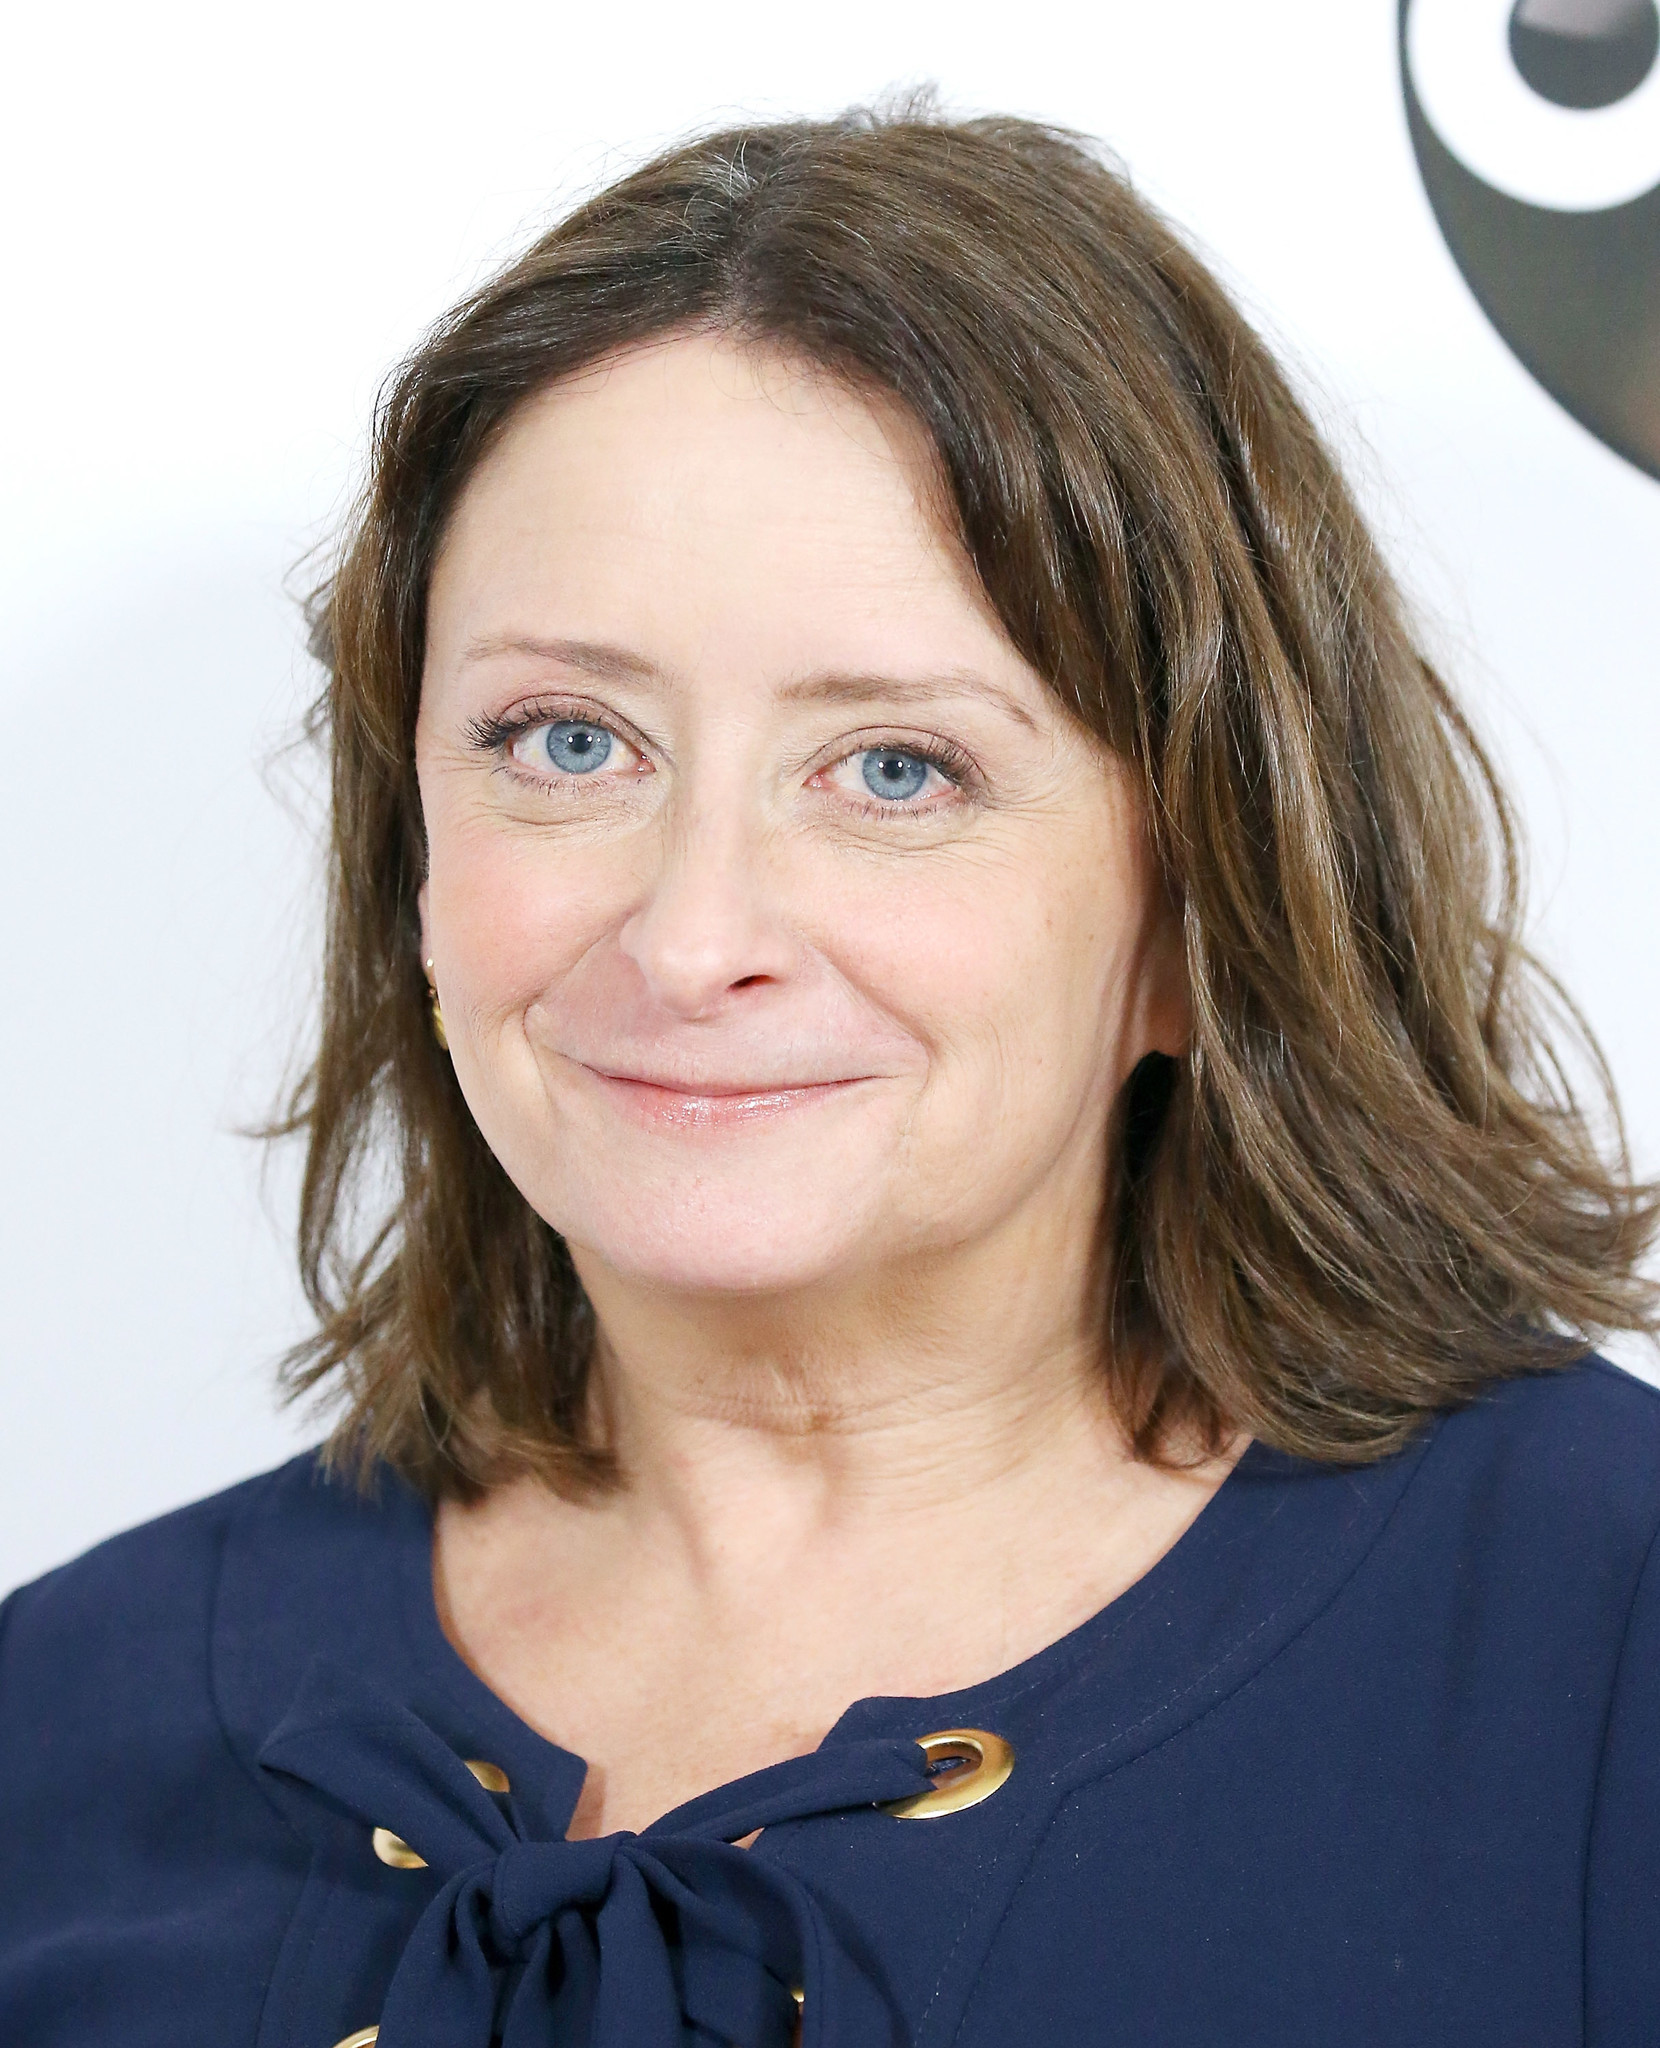 Rachel Dratch nude (41 photo), Topless, Paparazzi, Twitter, cleavage 2015